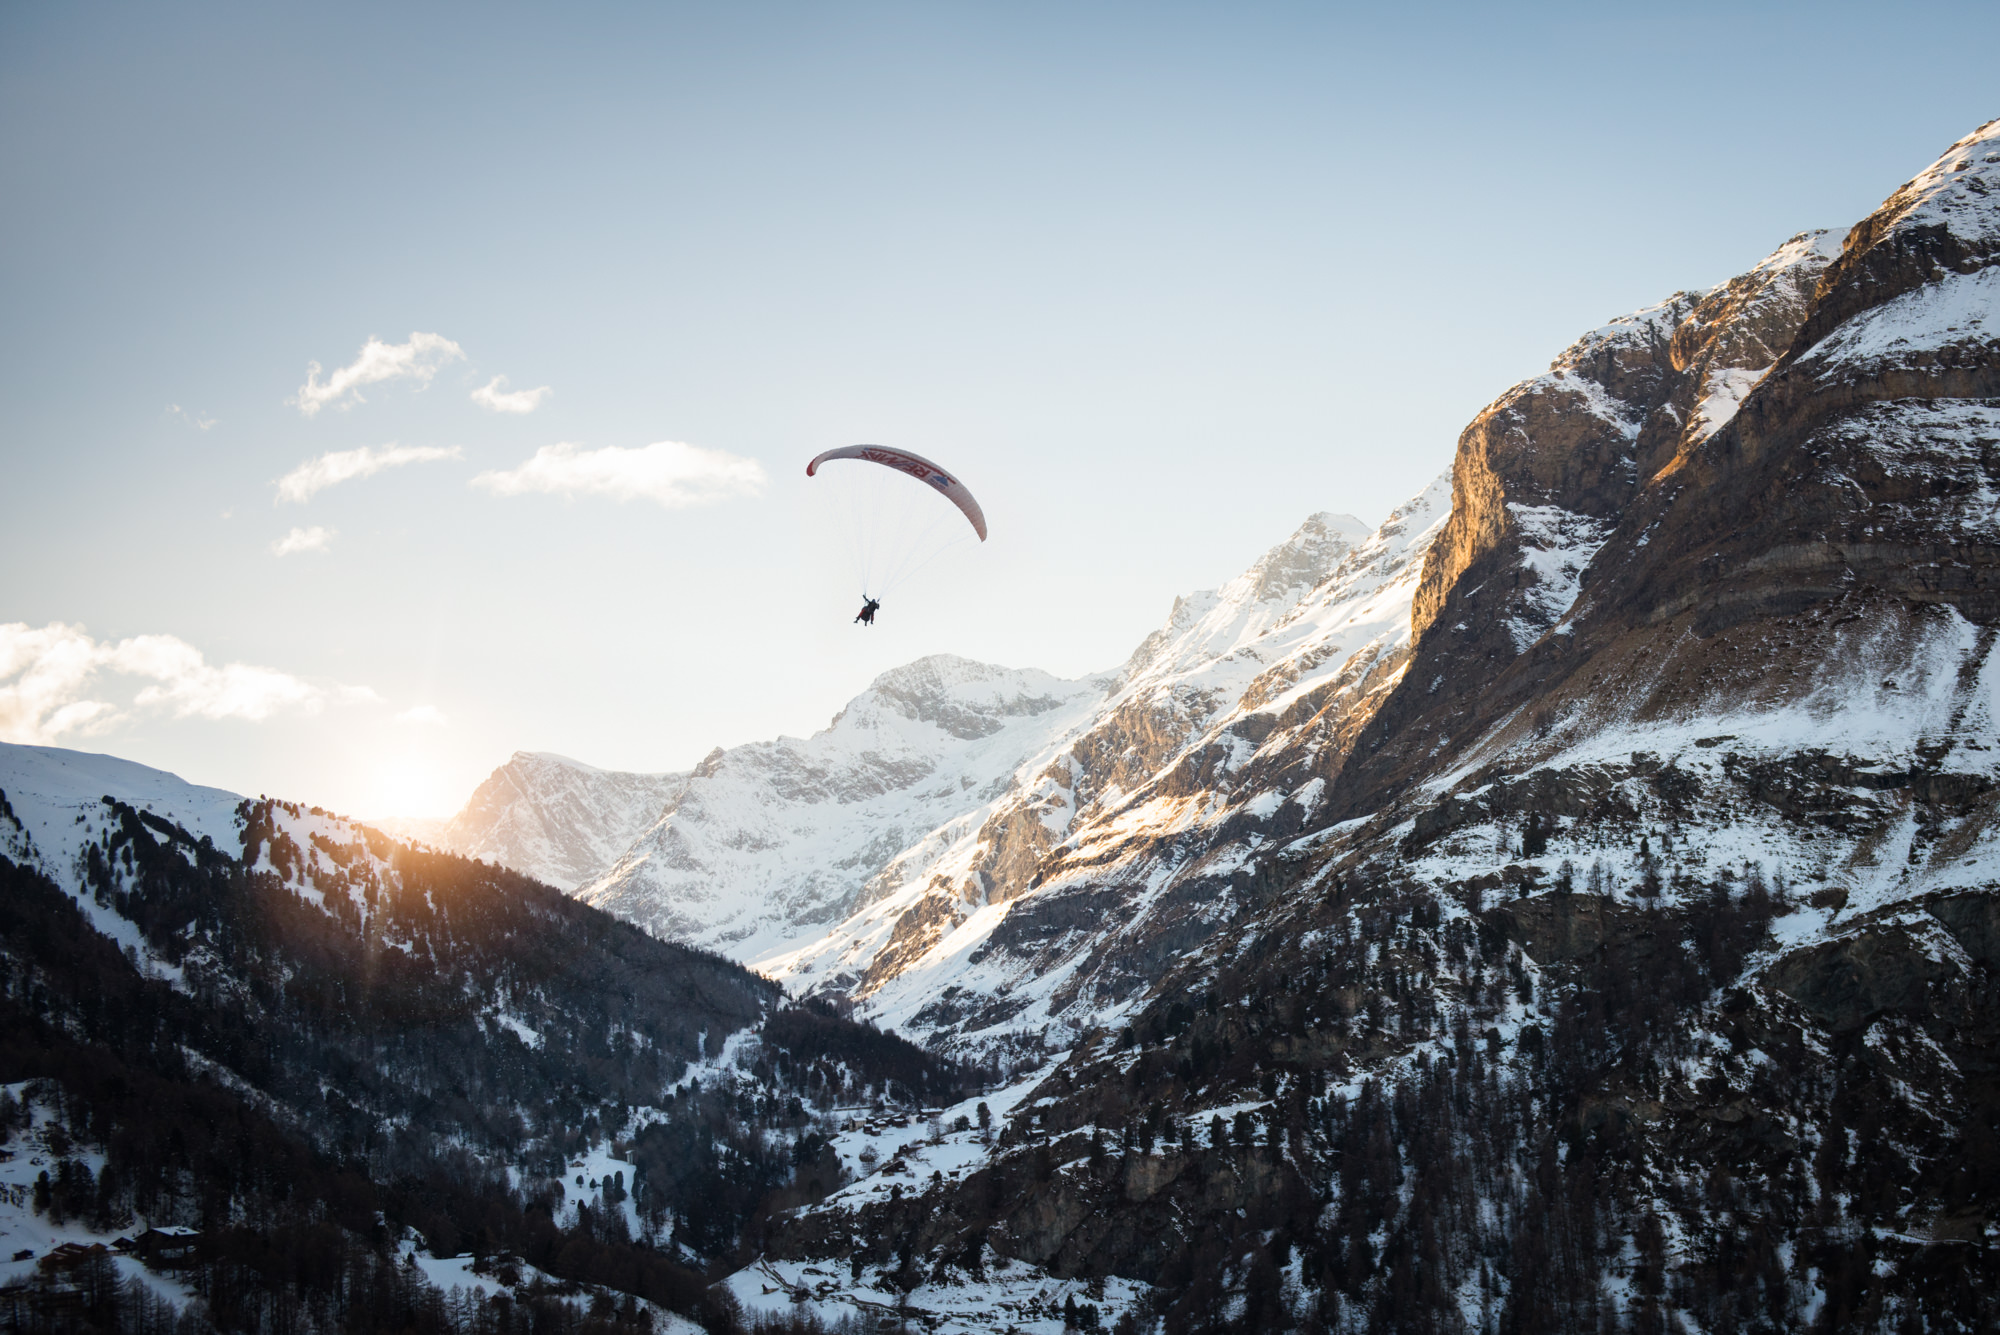 A paraglider flying through a snowy mountain at sunset